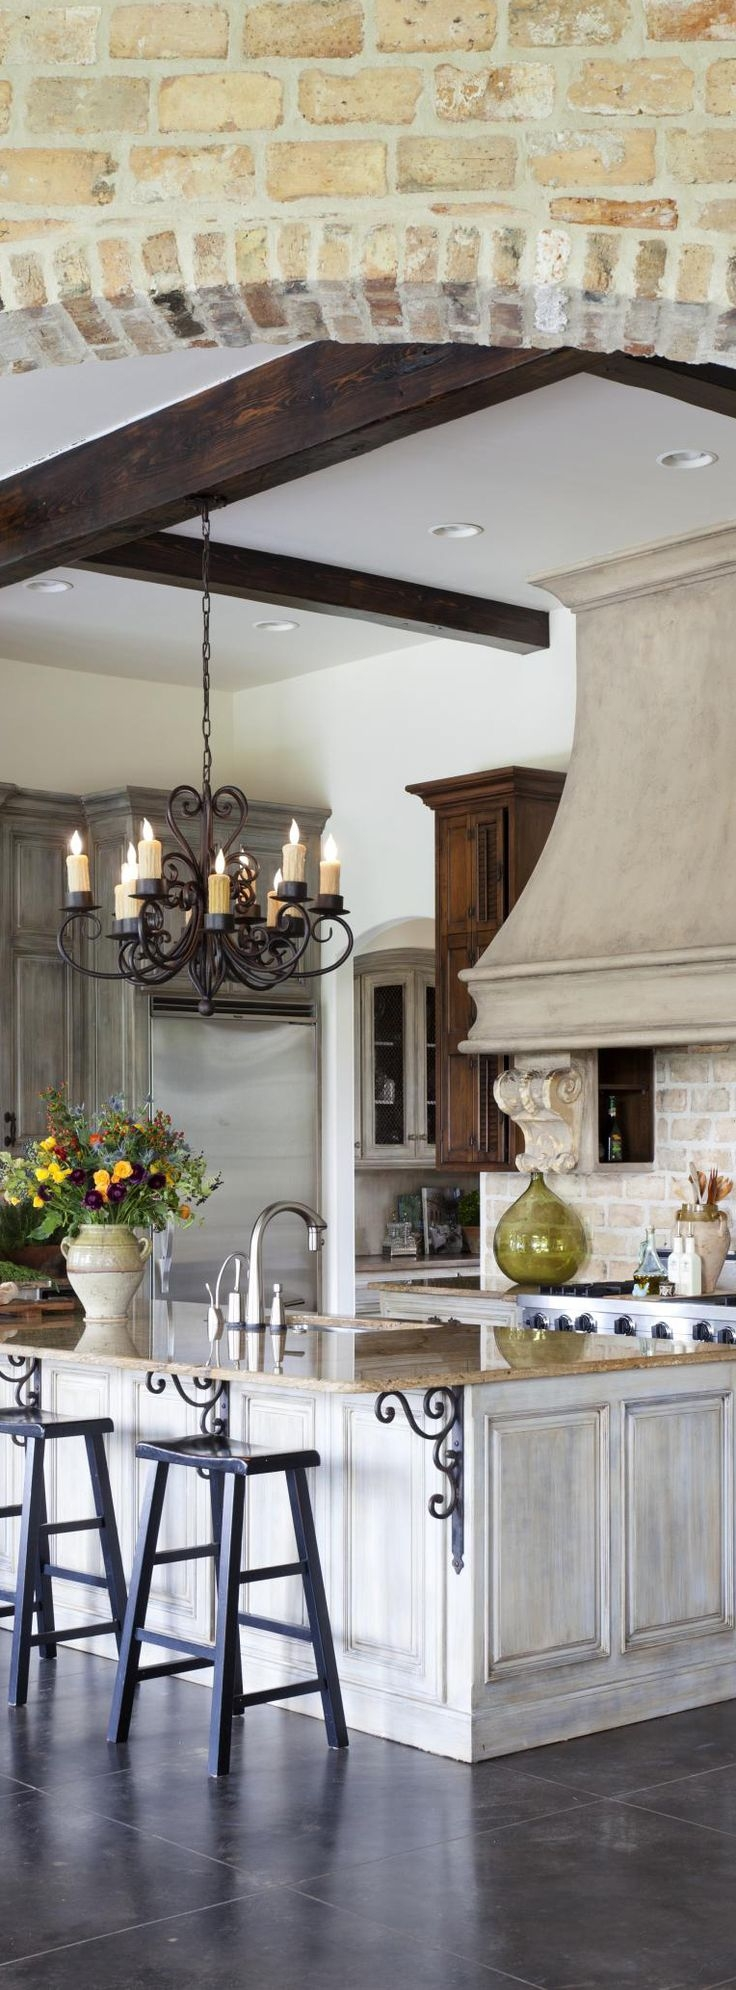 Best 25 French Country Chandelier Ideas On Pinterest French With French Country Chandeliers For Kitchen (View 18 of 25)